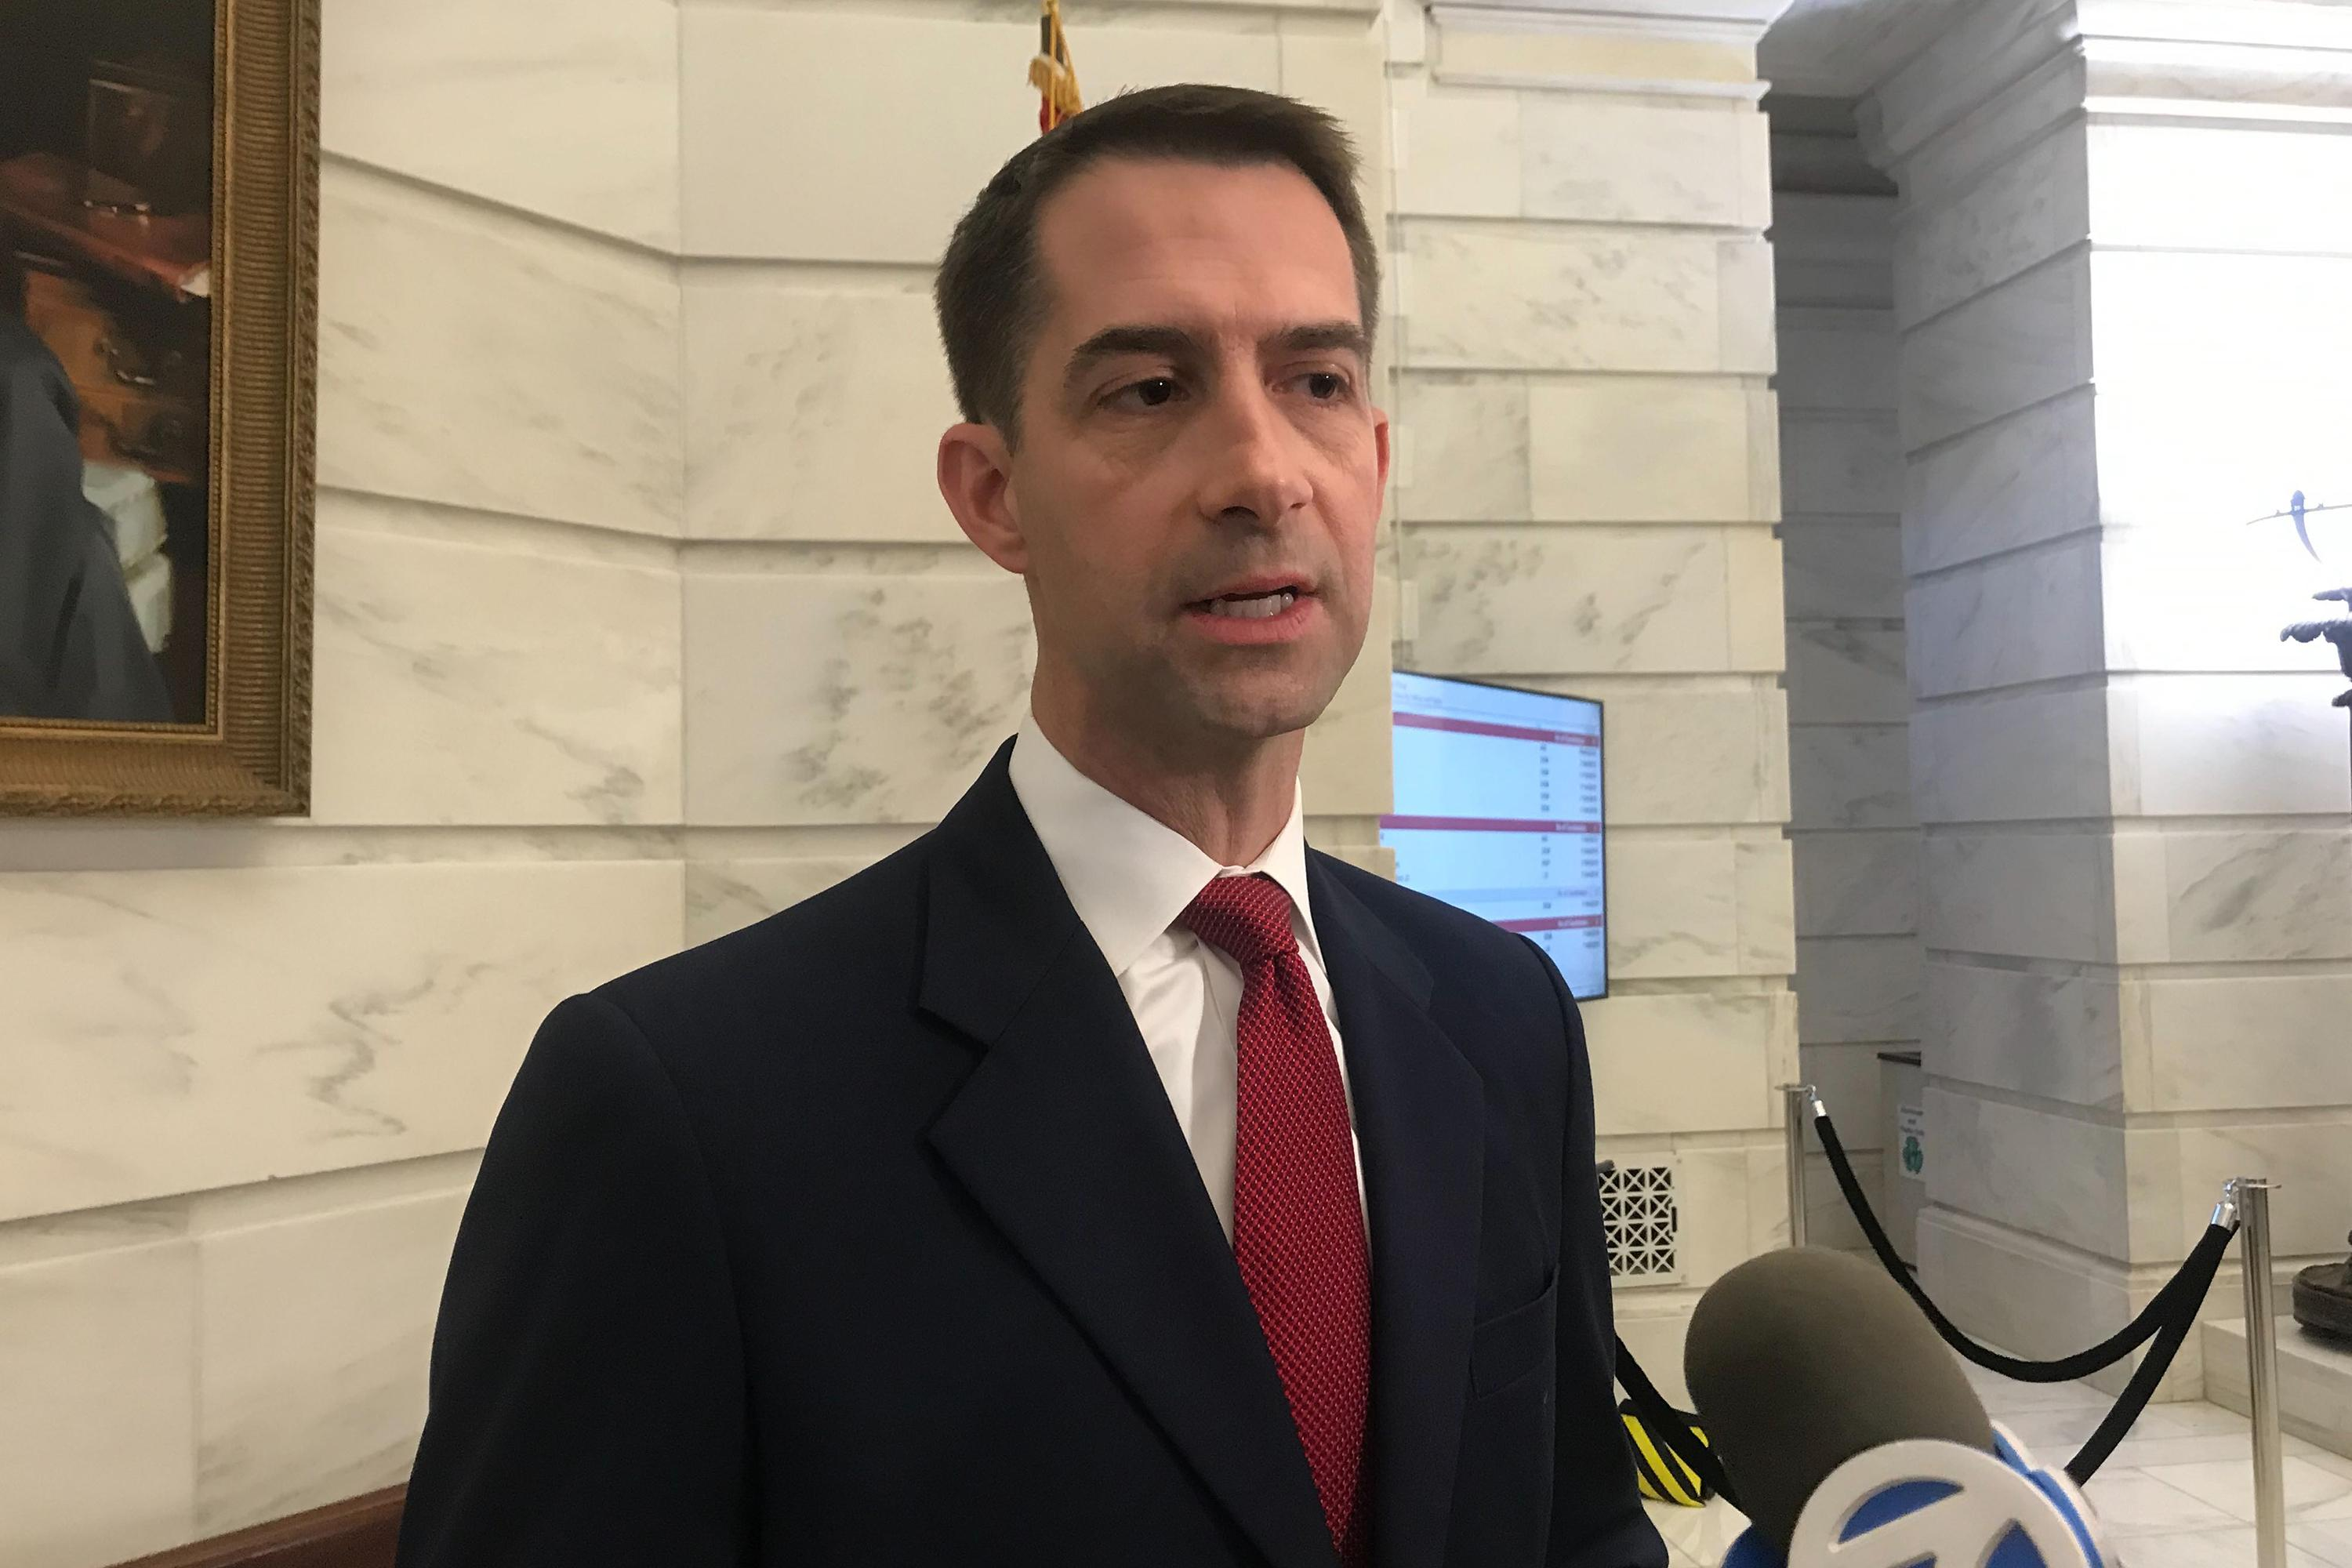 Tom Cotton: Democrats haven't proven case, don't need to 'prolong' things